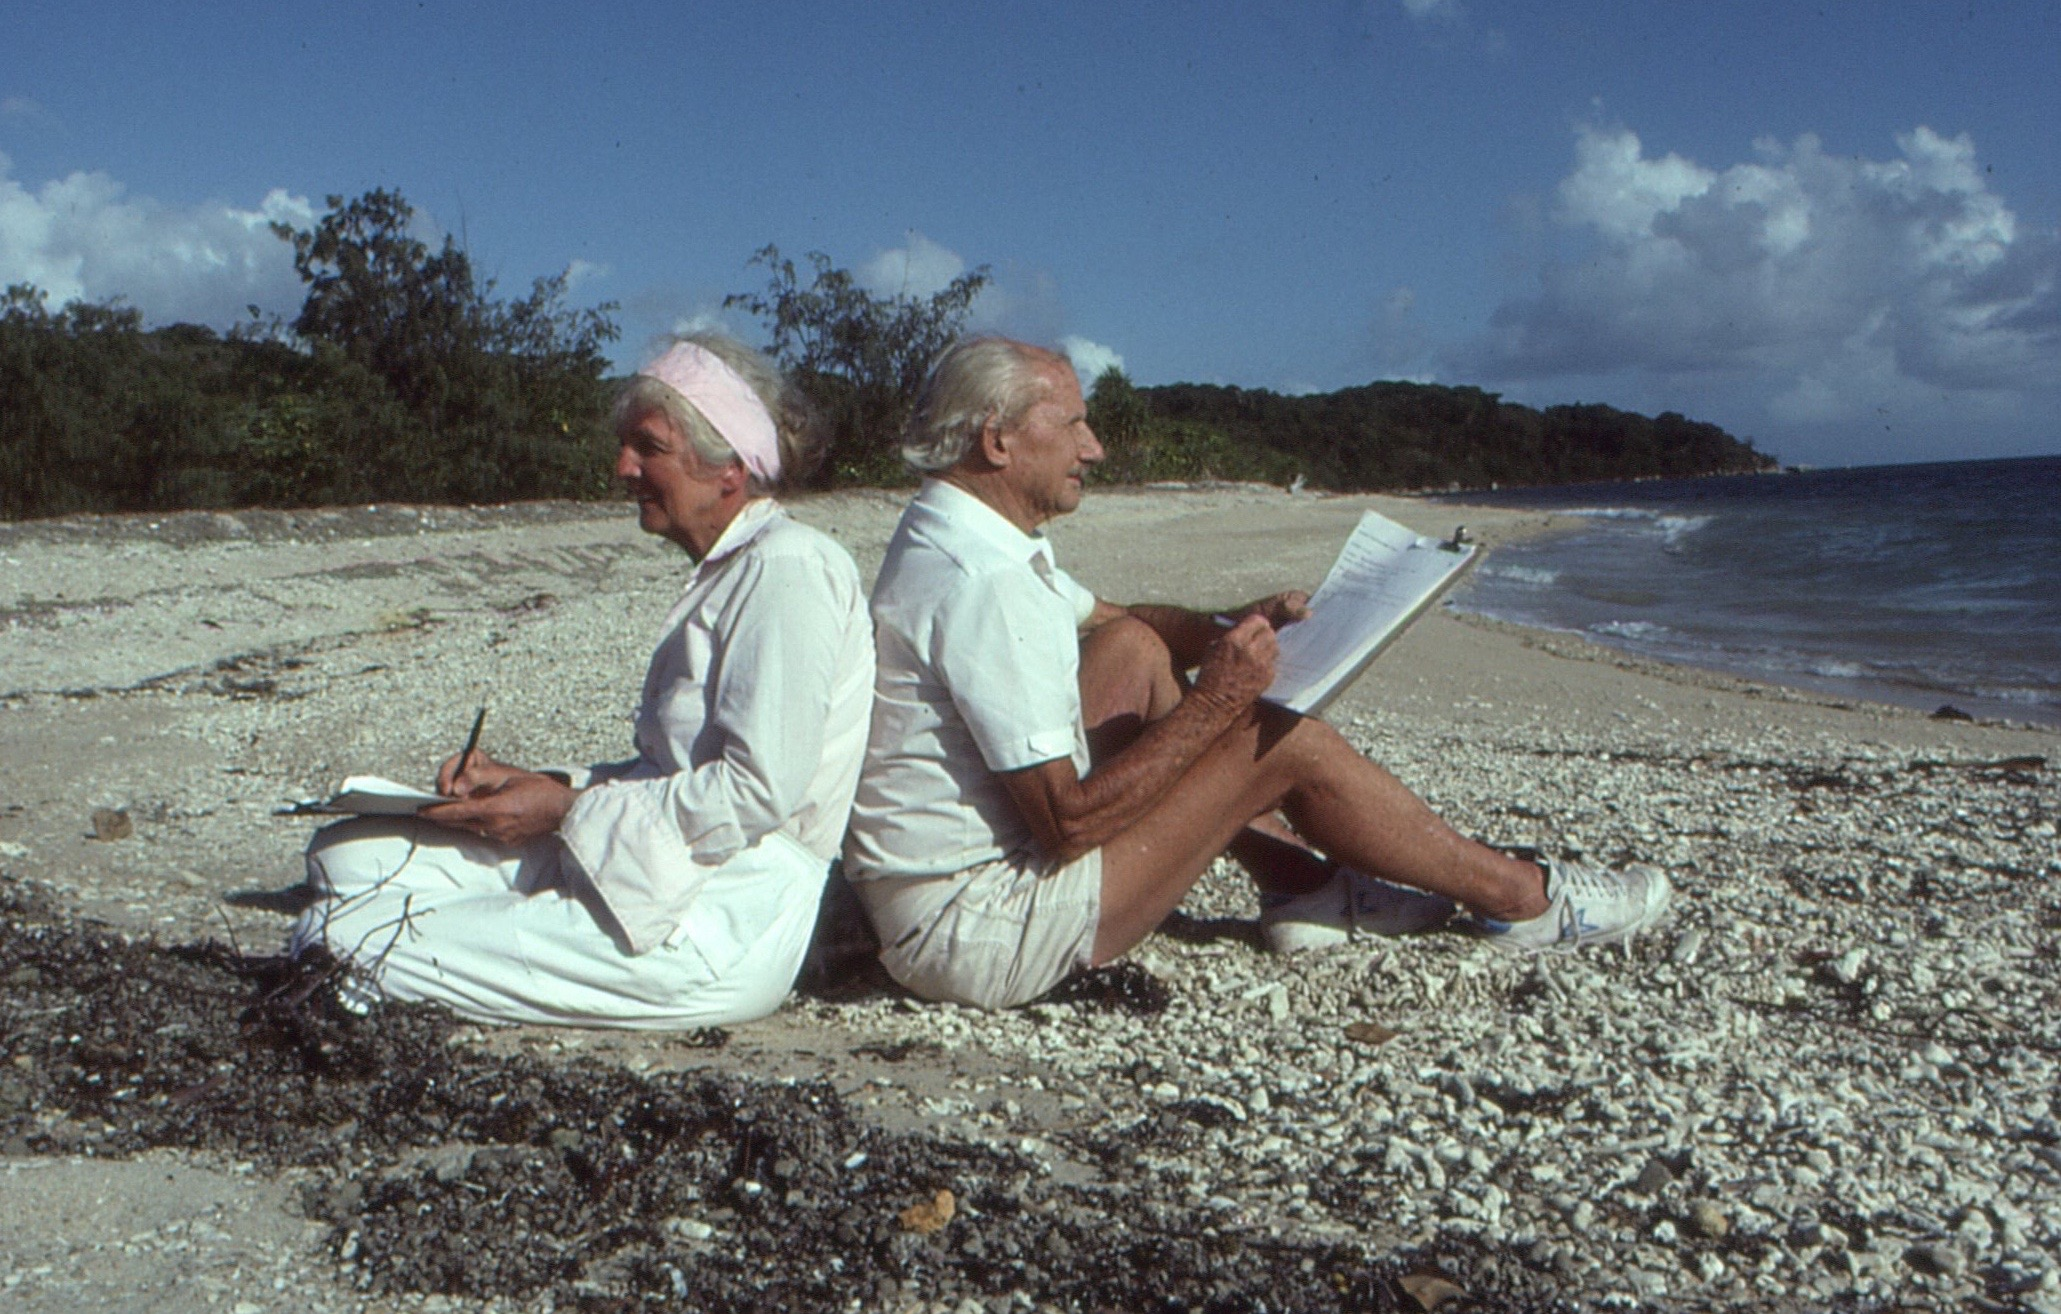 Arthur and Margaret on North Brook Island in the 1980s counting the Torres Strait pigeons. Photo courtesy and copyright of Cliff & Dawn Frith.